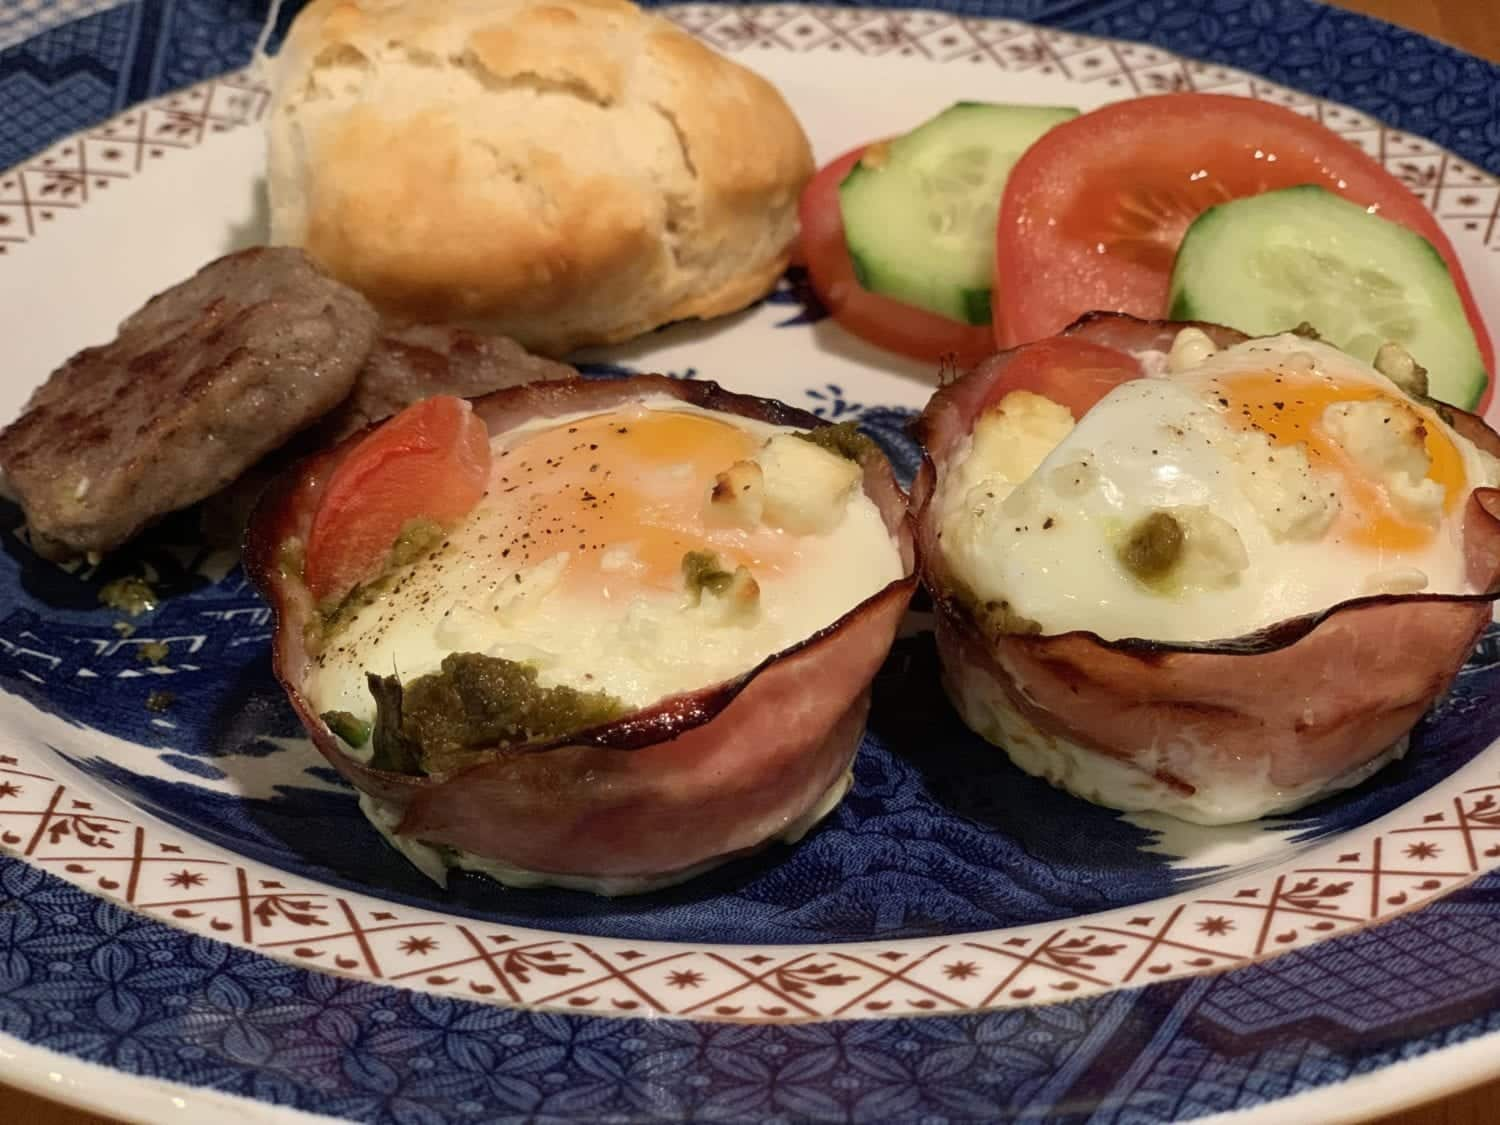 nested eggs with sausage, biscuit and veggies... breakfast at the 1795 Acorn Inn in Canandaigua is always included in your stay